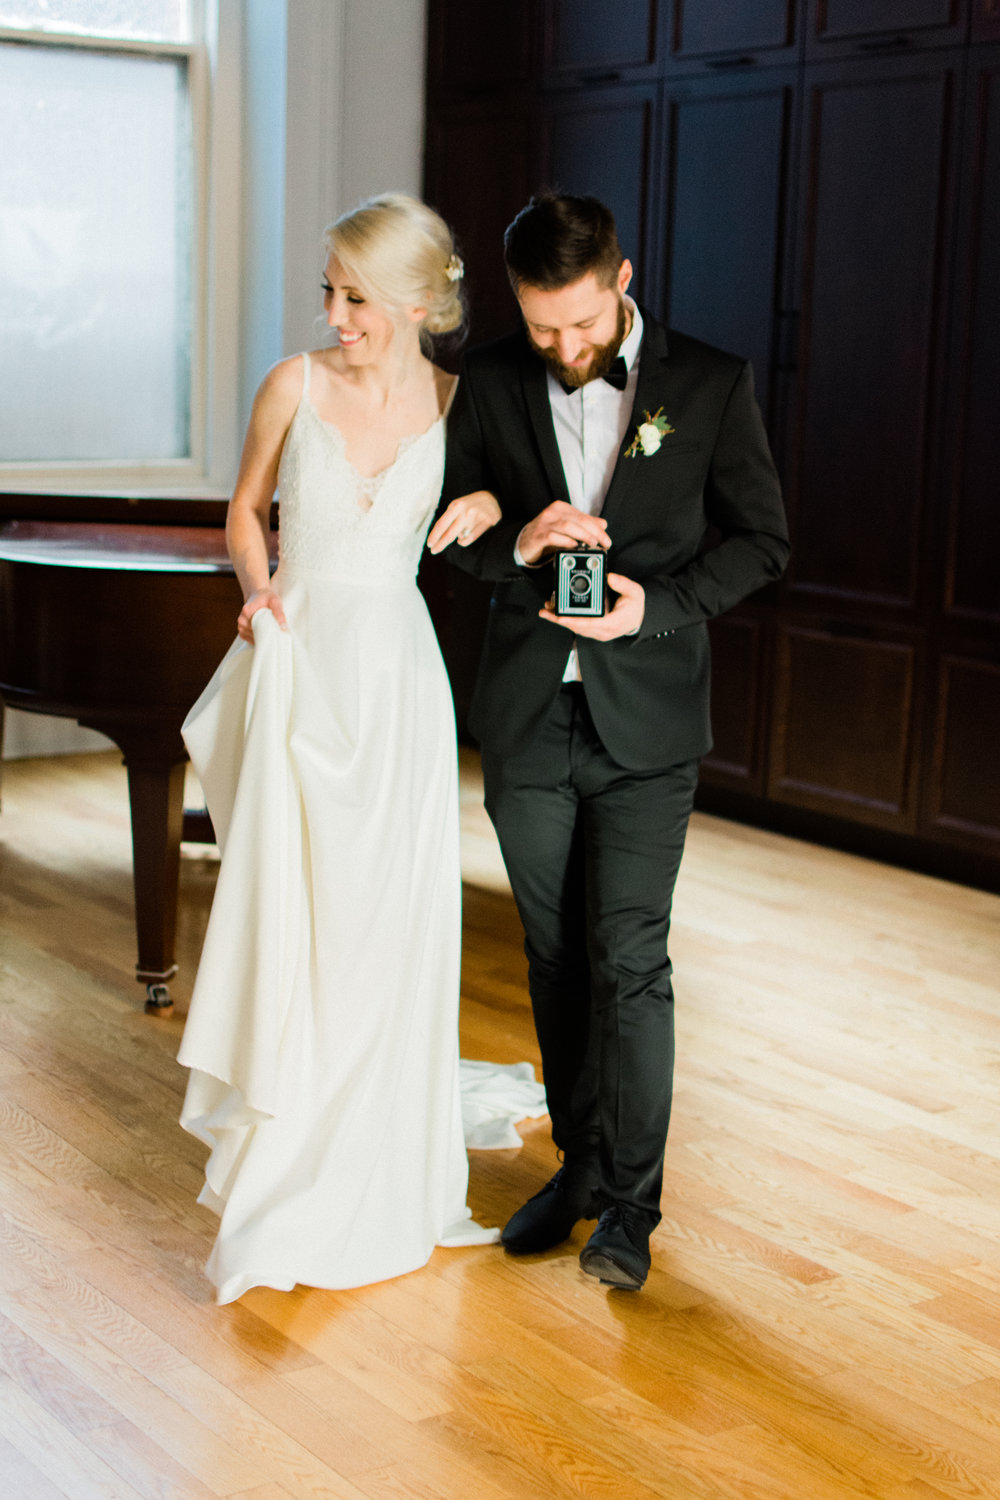 Jacqueline Anne Photography, Wedding photographer in Halifax Nova Scotia, Elopement at The Halifax Club